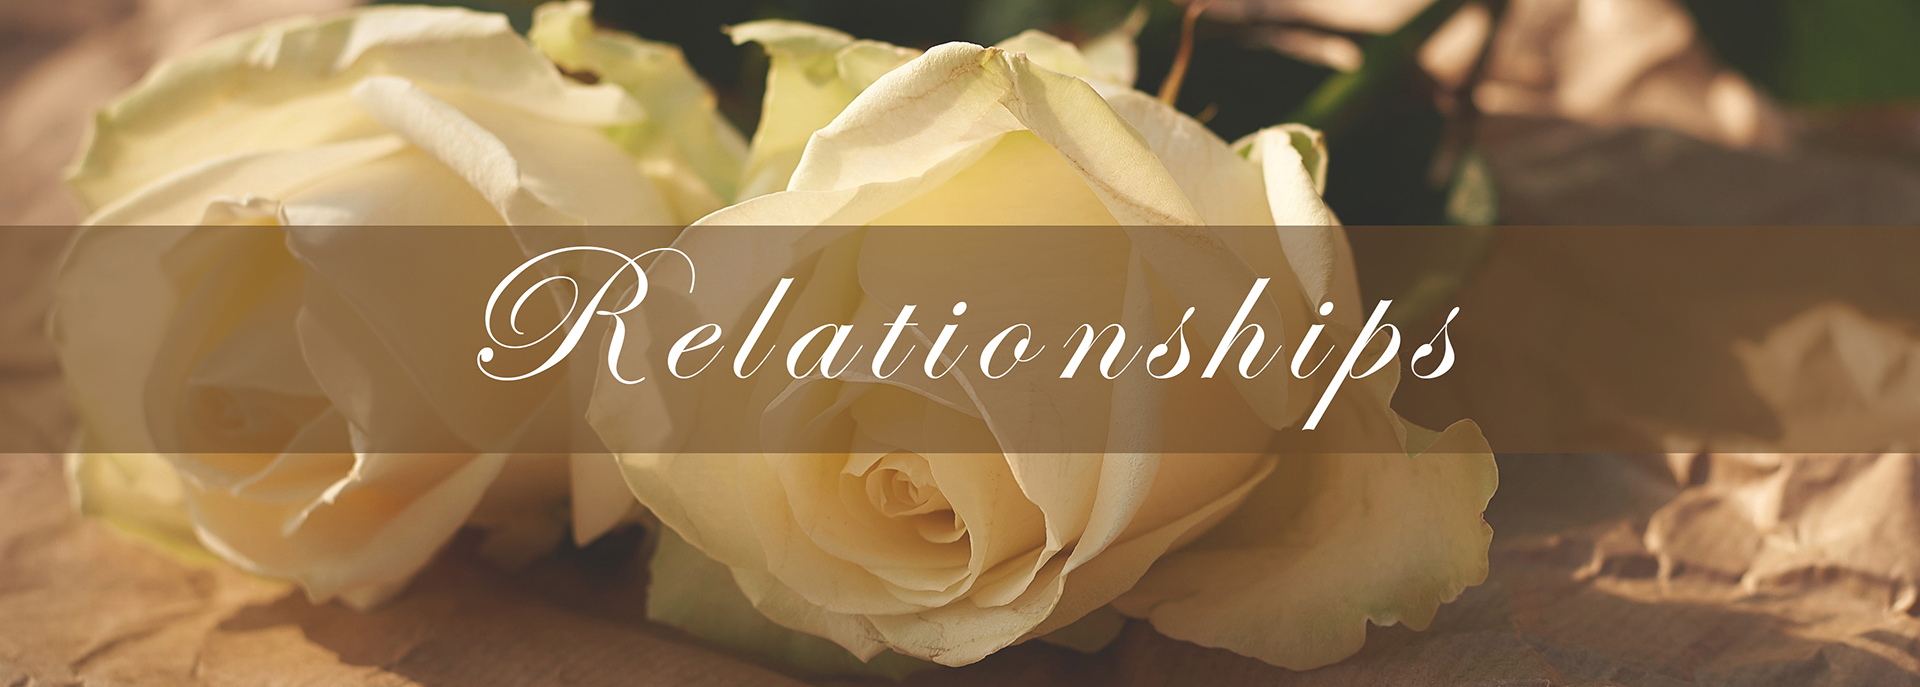 Counselling for relationships